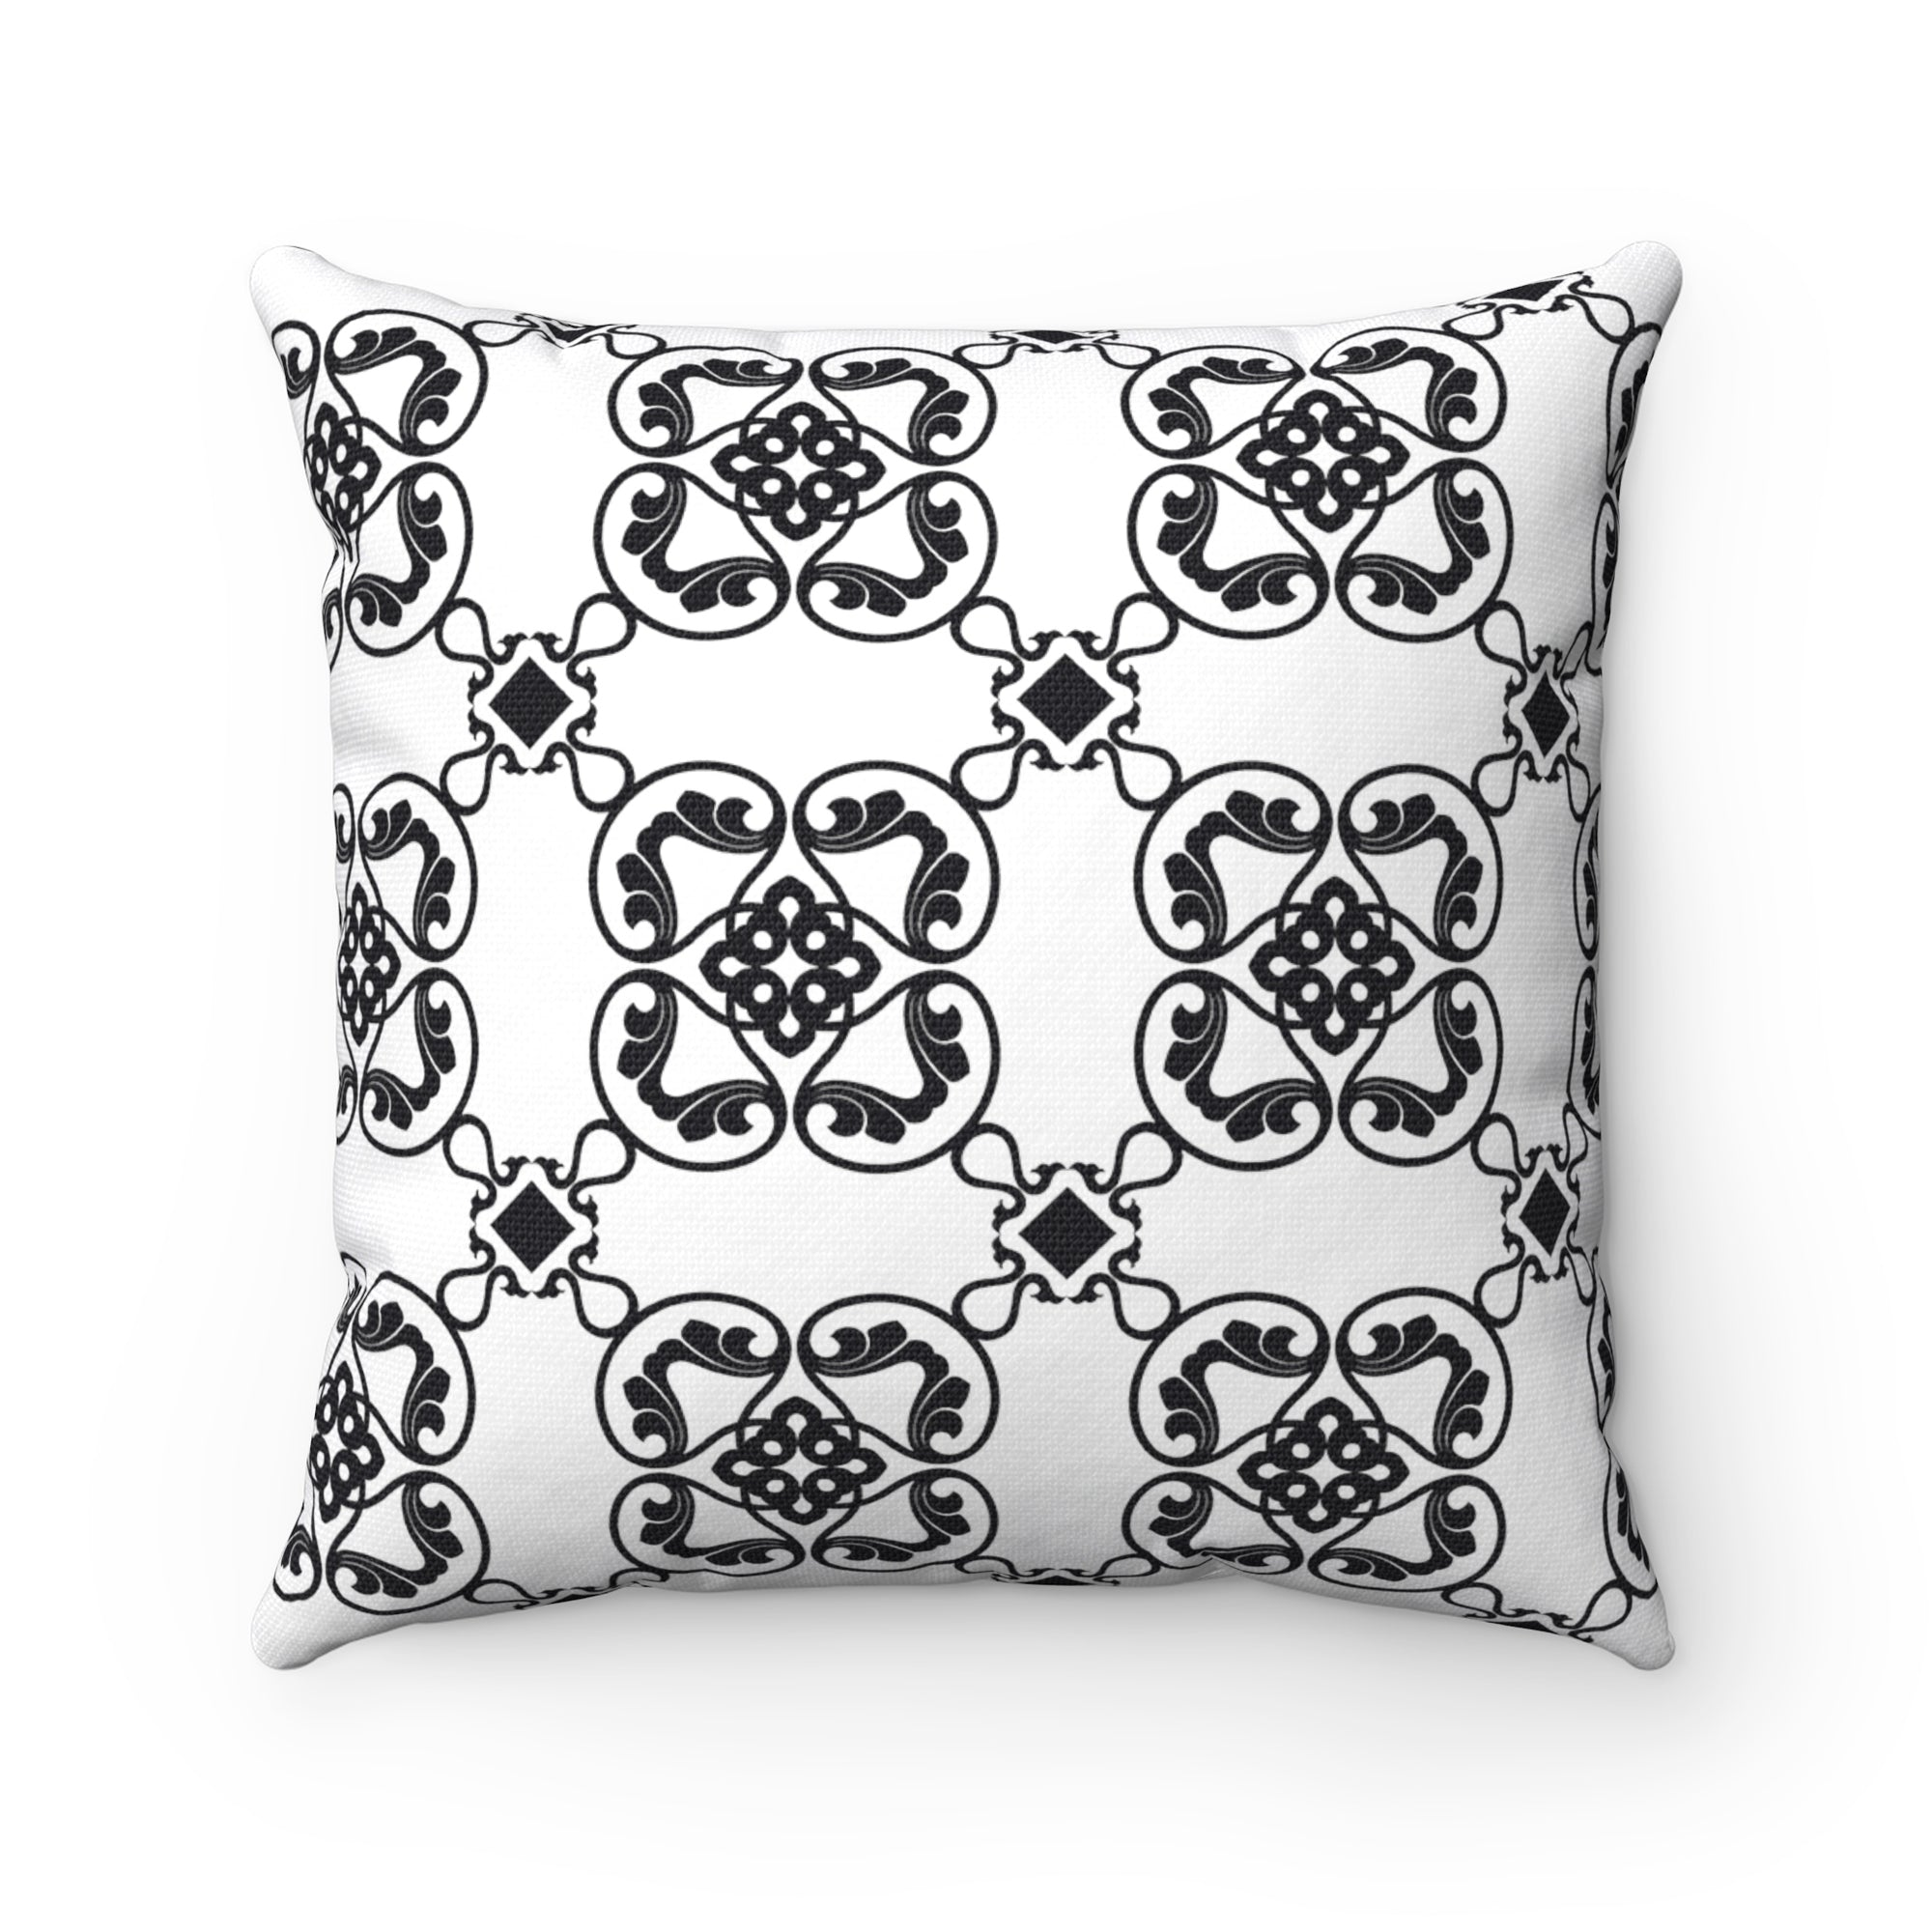 a case big spun polyester design haul thalia square pillow by products prints